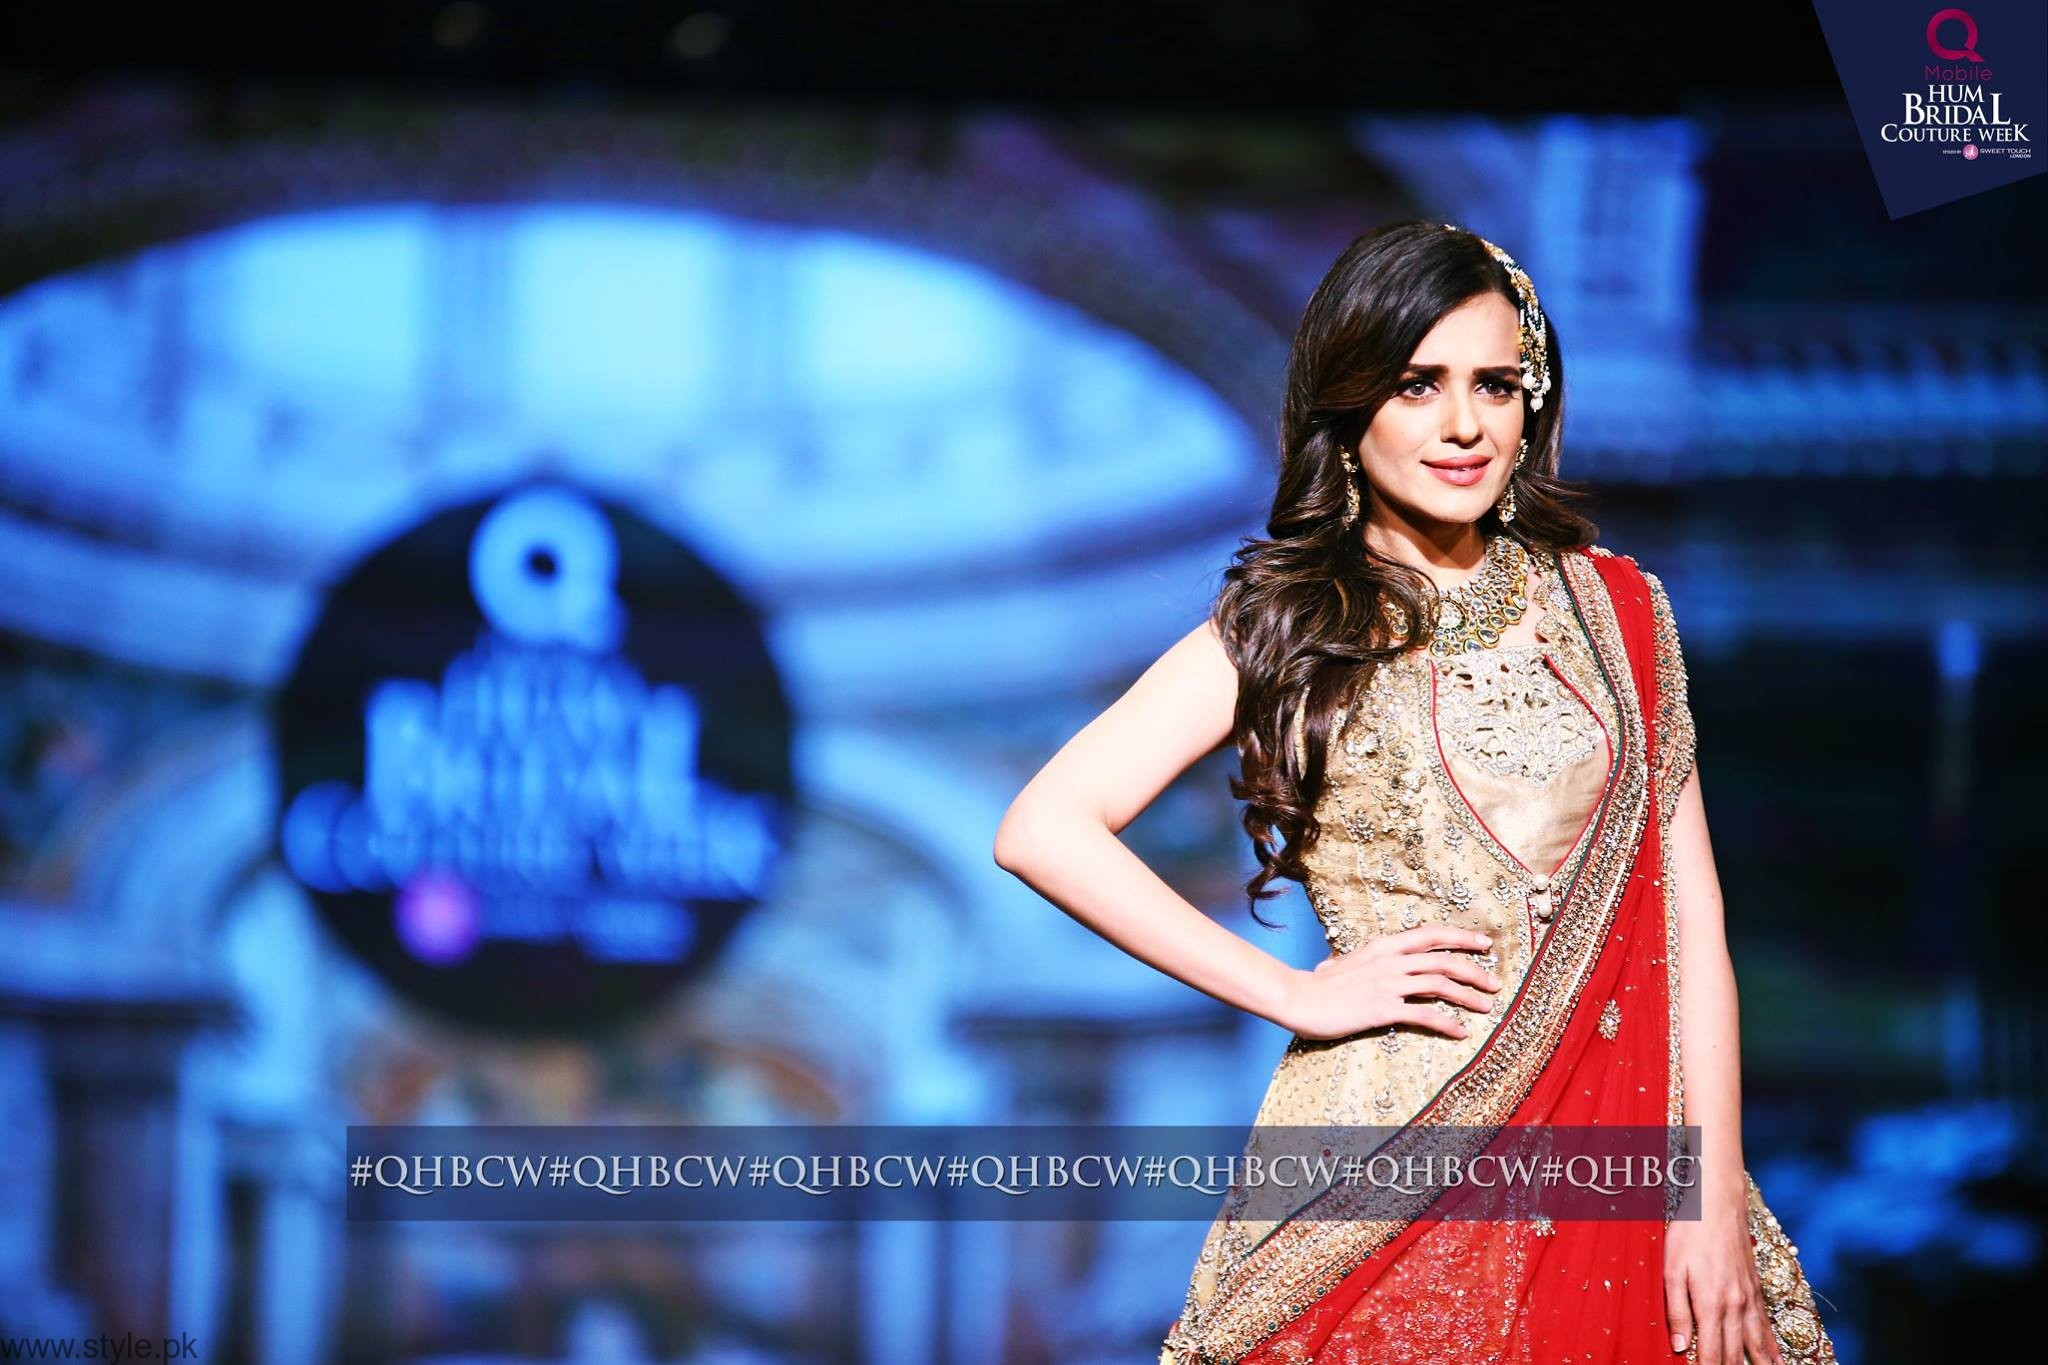 Sumbul iqbal - Bridal Couture Week 2016 Day 3